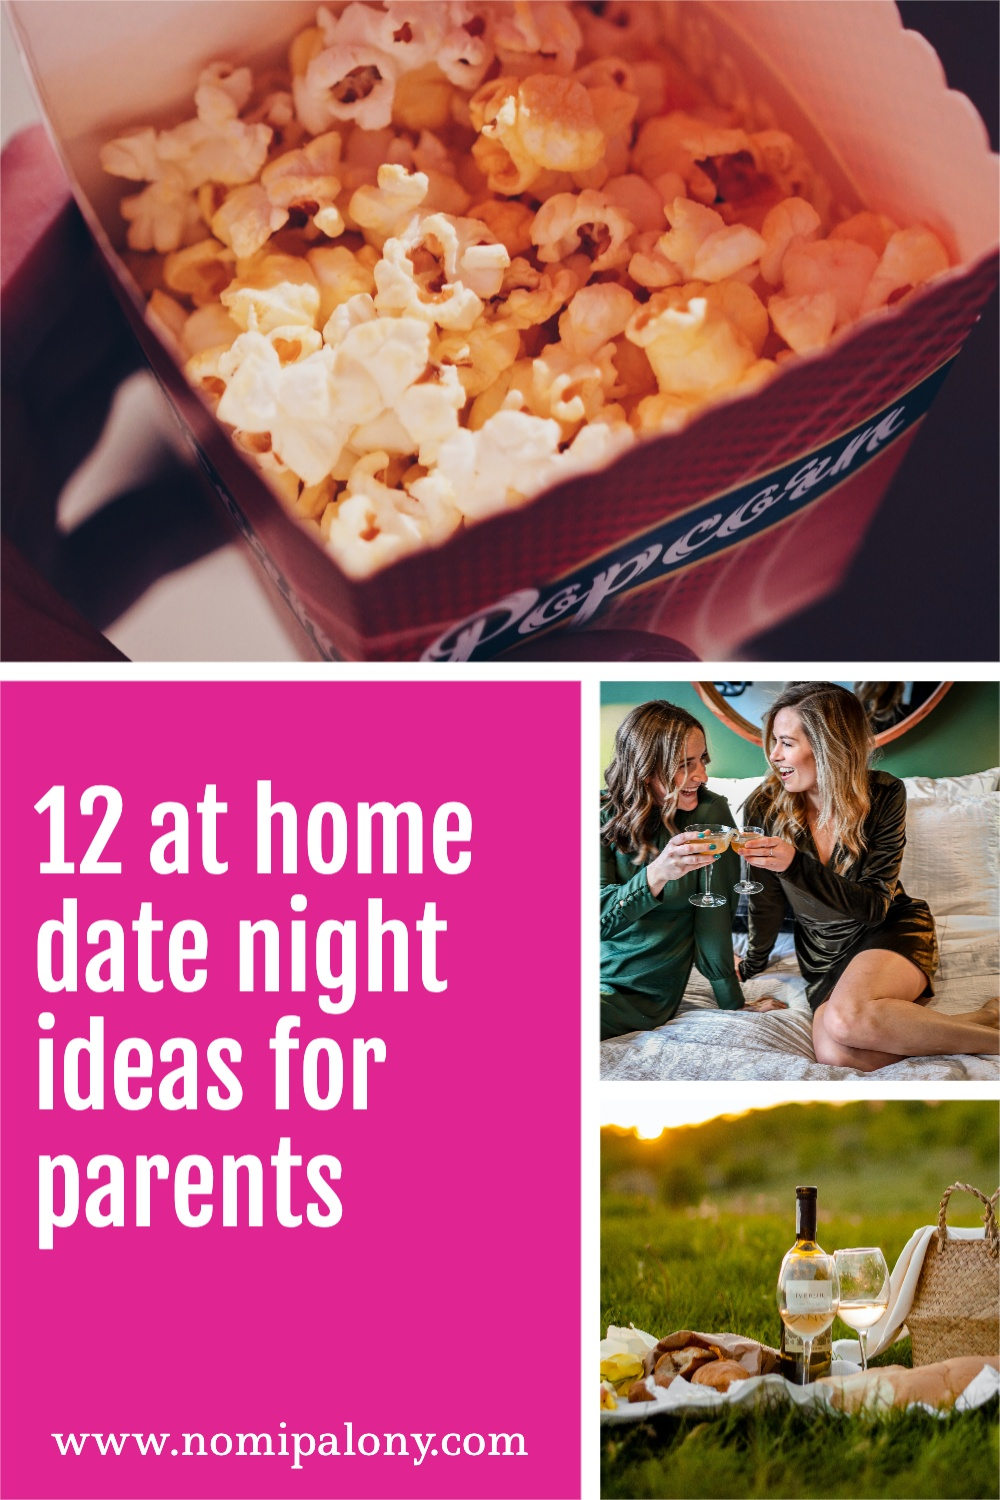 12 at home date night ideas for parents